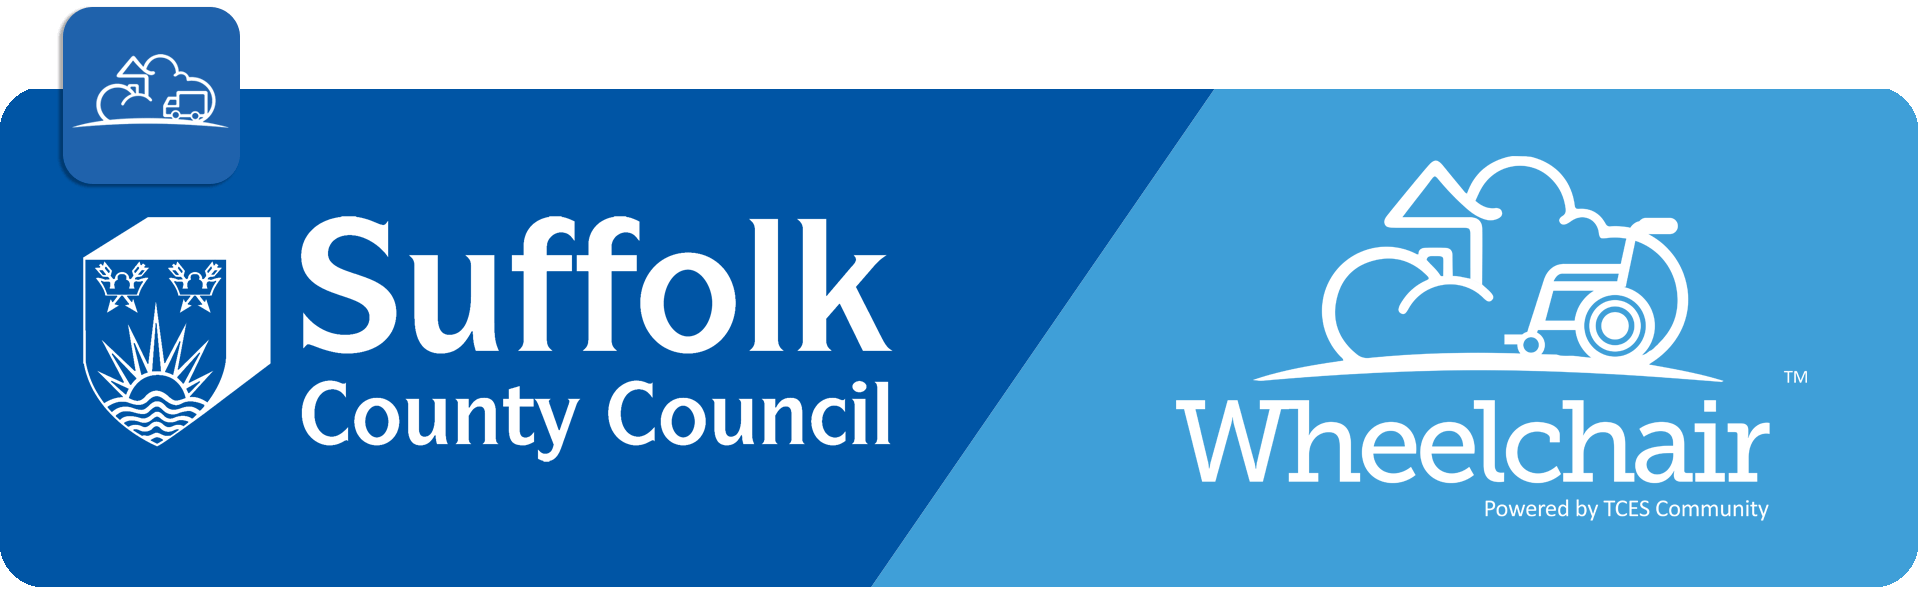 suffolk county council and TCES Wheelchair logos